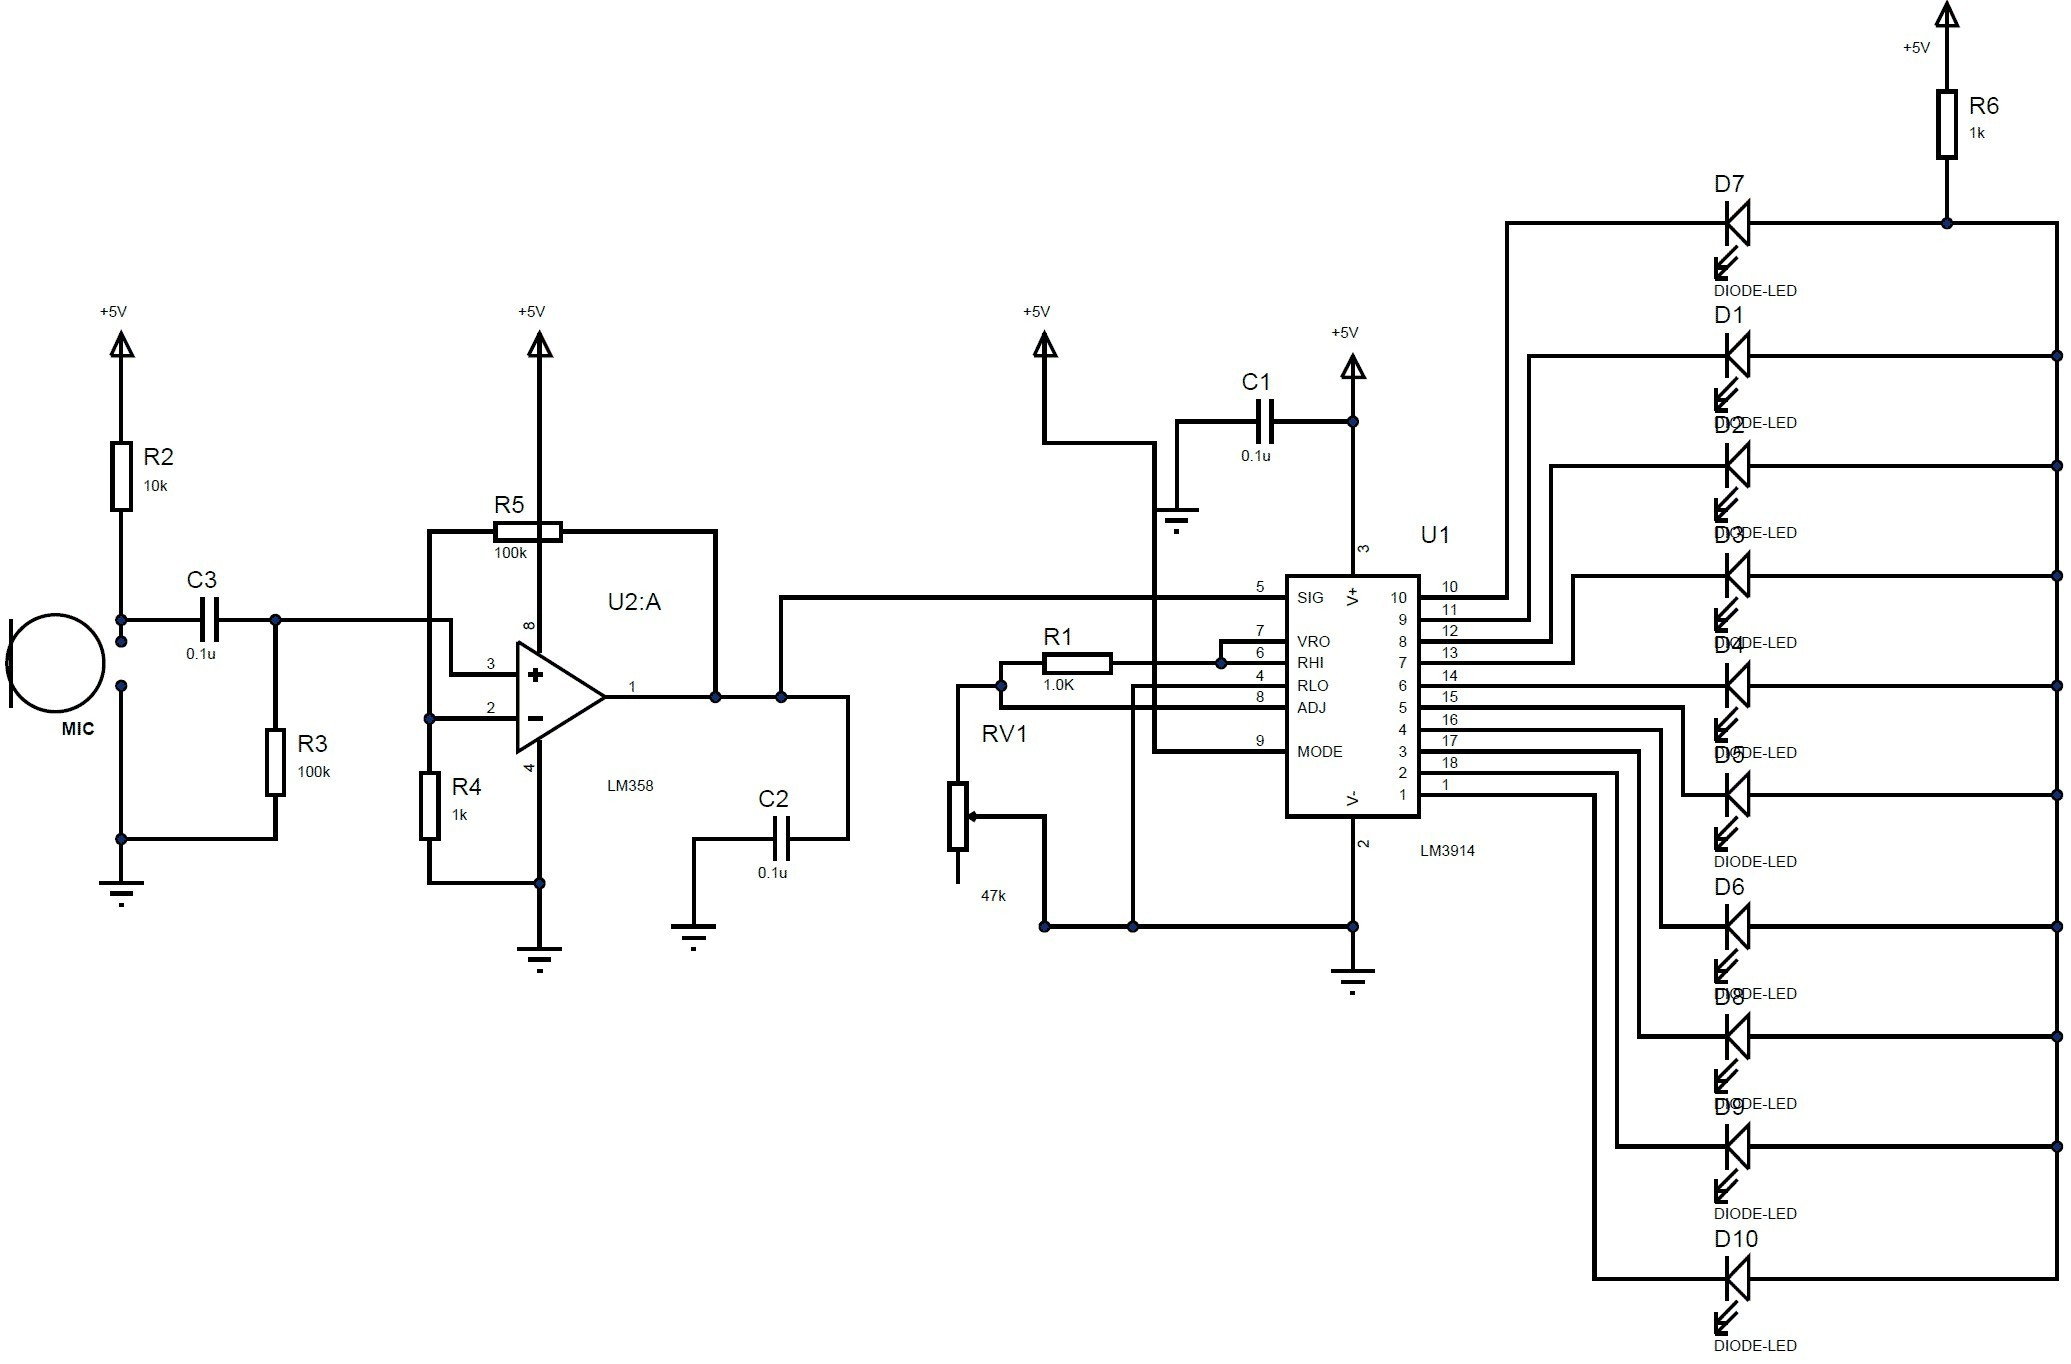 tork time clock wiring diagram Download cell Wiring Diagram Inspirational Ponent Series Circuit Diagrams for DOWNLOAD Wiring Diagram